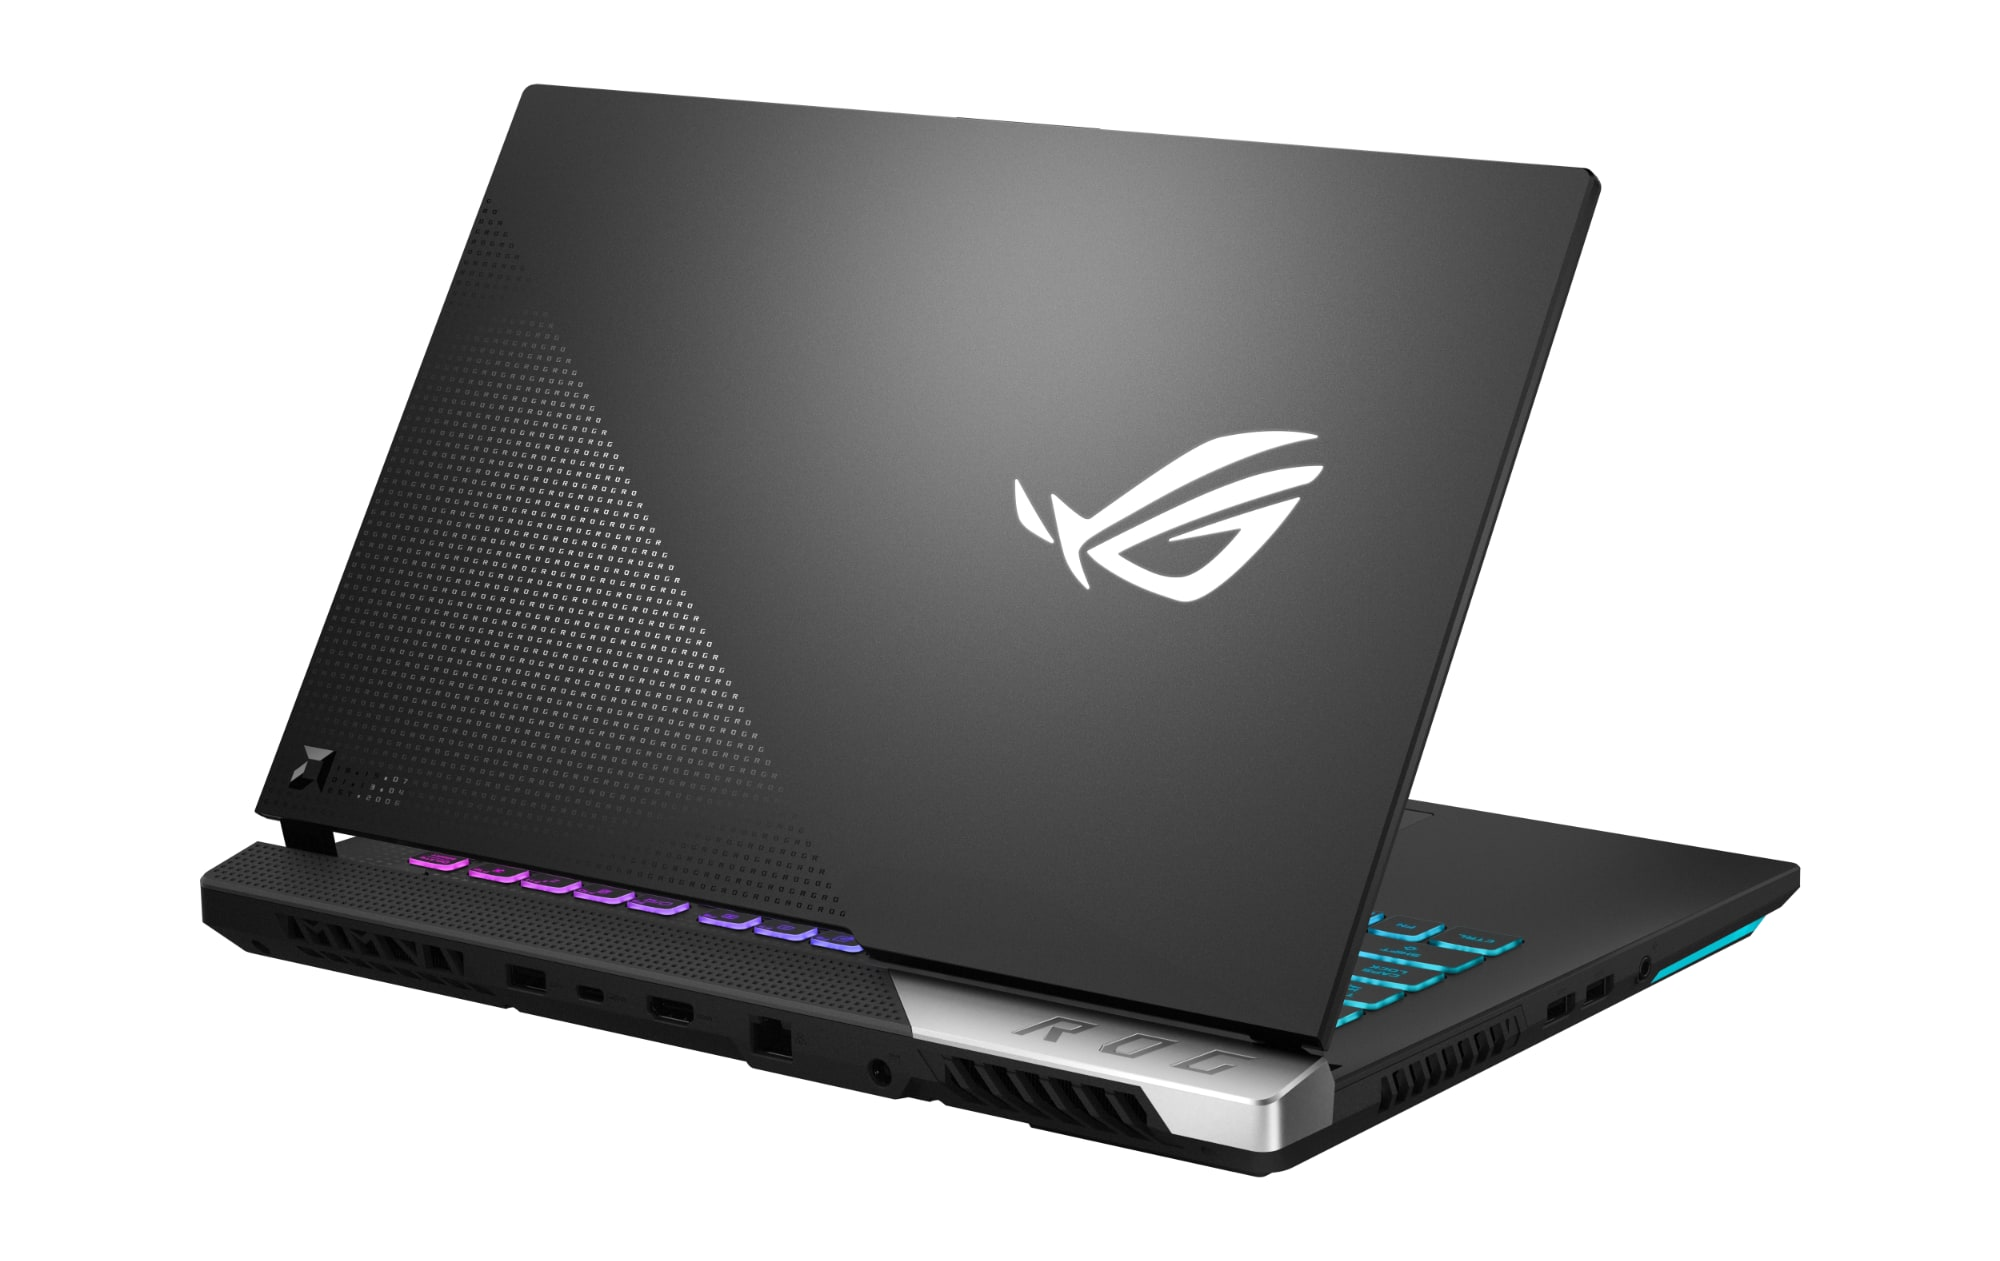 AMD makes a bigger play for gaming laptops with Radeon RX 6000M GPUs